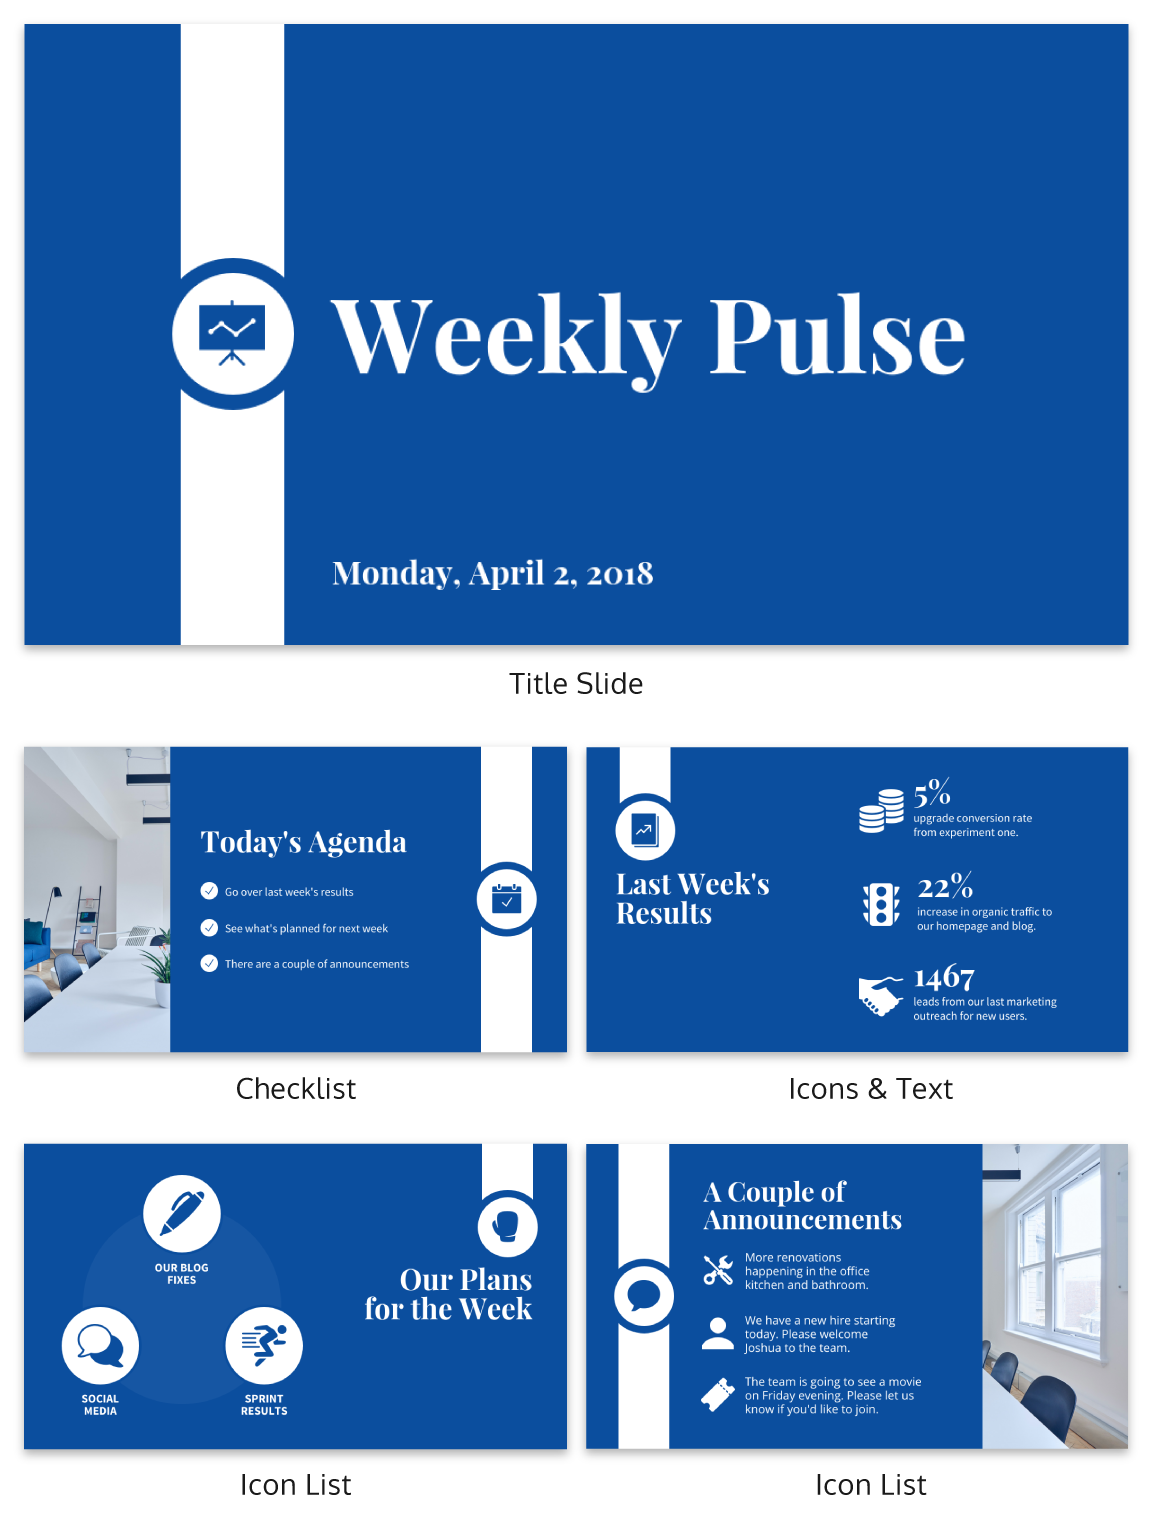 Corporate Pulse Weekly Update Business Presentation